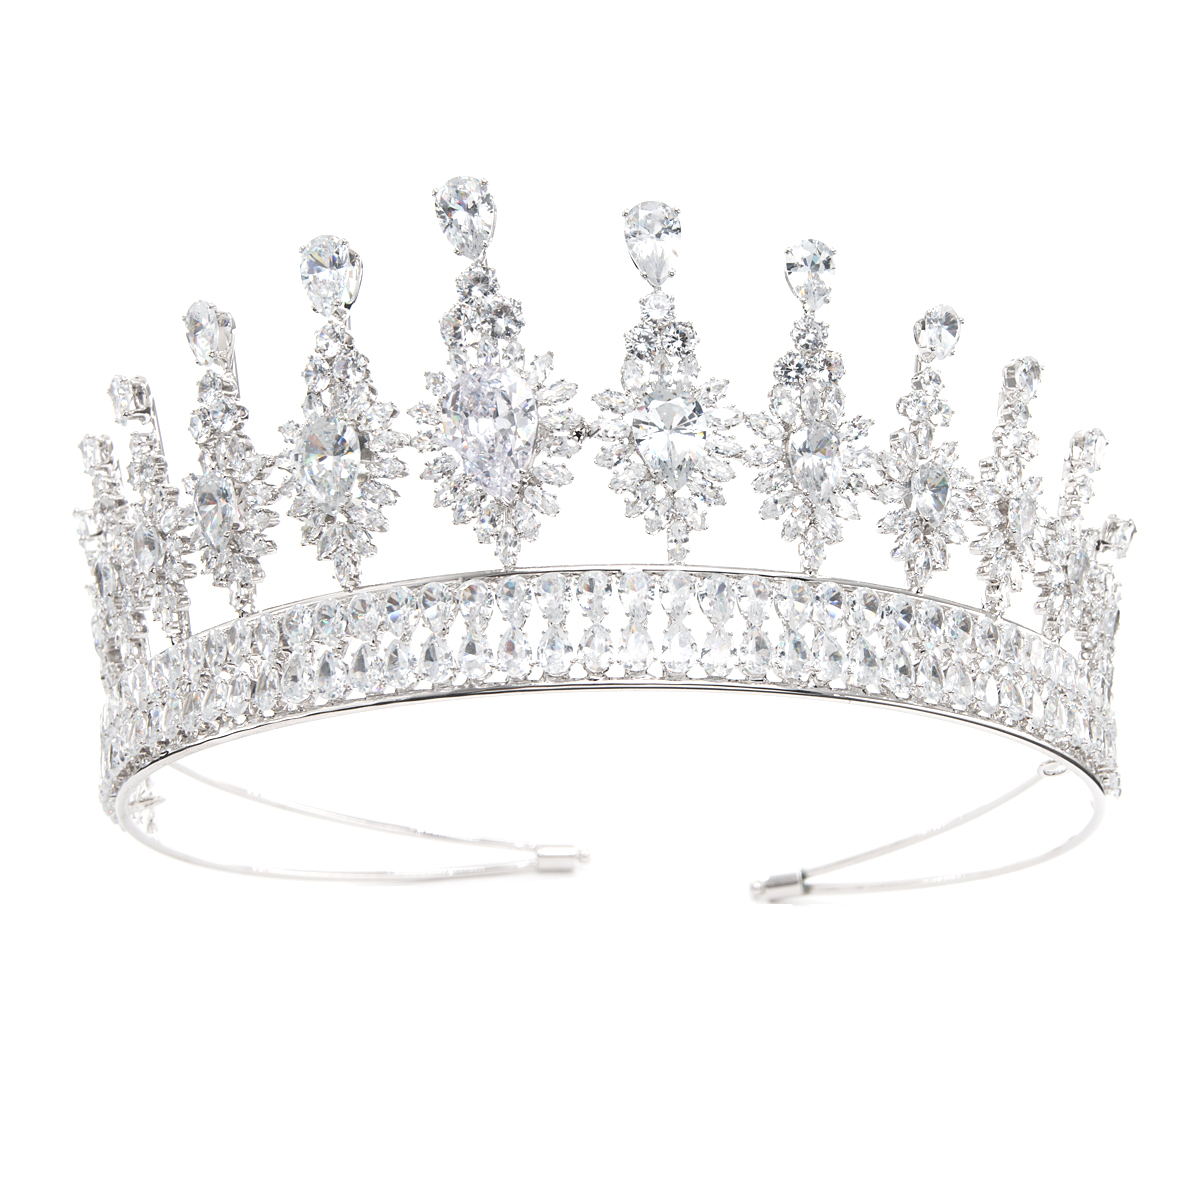 2018 New Wedding Brides Tiara Crown Hair Jewelry Accessories Micro Pave 5A CZ Rhinestone Crystal Tiara for Party Jewelry HG312502018 New Wedding Brides Tiara Crown Hair Jewelry Accessories Micro Pave 5A CZ Rhinestone Crystal Tiara for Party Jewelry HG31250